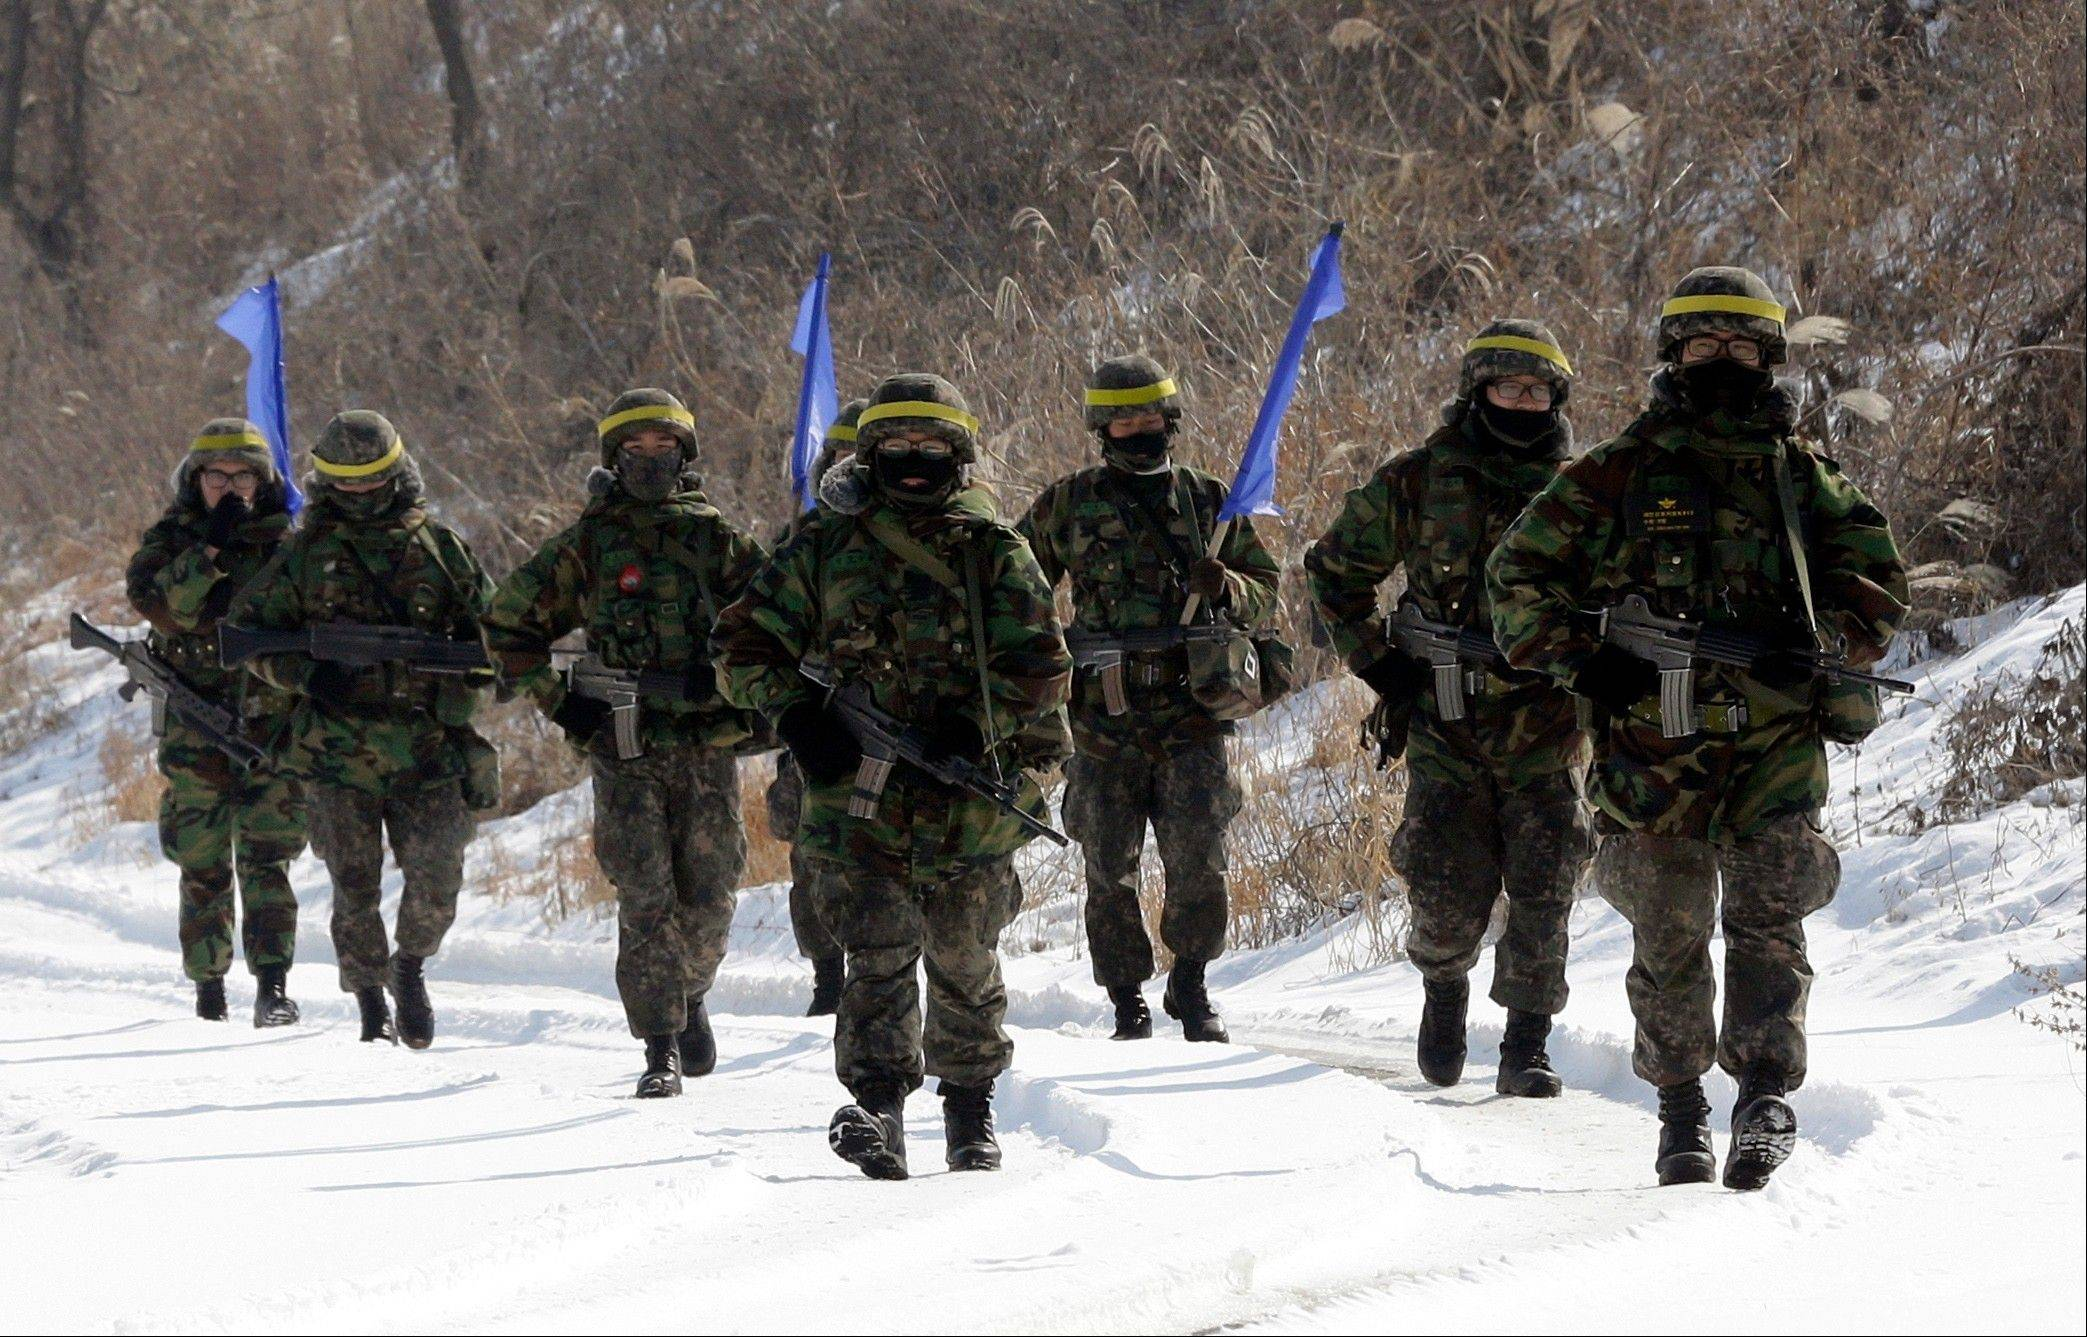 South Korean army soldiers walk on a snow covered road during an exercise near the border village of Panmunjom, which has separated the two Koreas since the Korean War, in Paju, north of Seoul, South Korea, Wednesday, Feb. 13, 2013. A day after North Korea defied U.N. warnings with a nuclear test, Pyongyang�s neighbors turned Wednesday to the business of bolstering their military preparations and sending out scientists to determine whether the detonation was as successful as the North claimed.